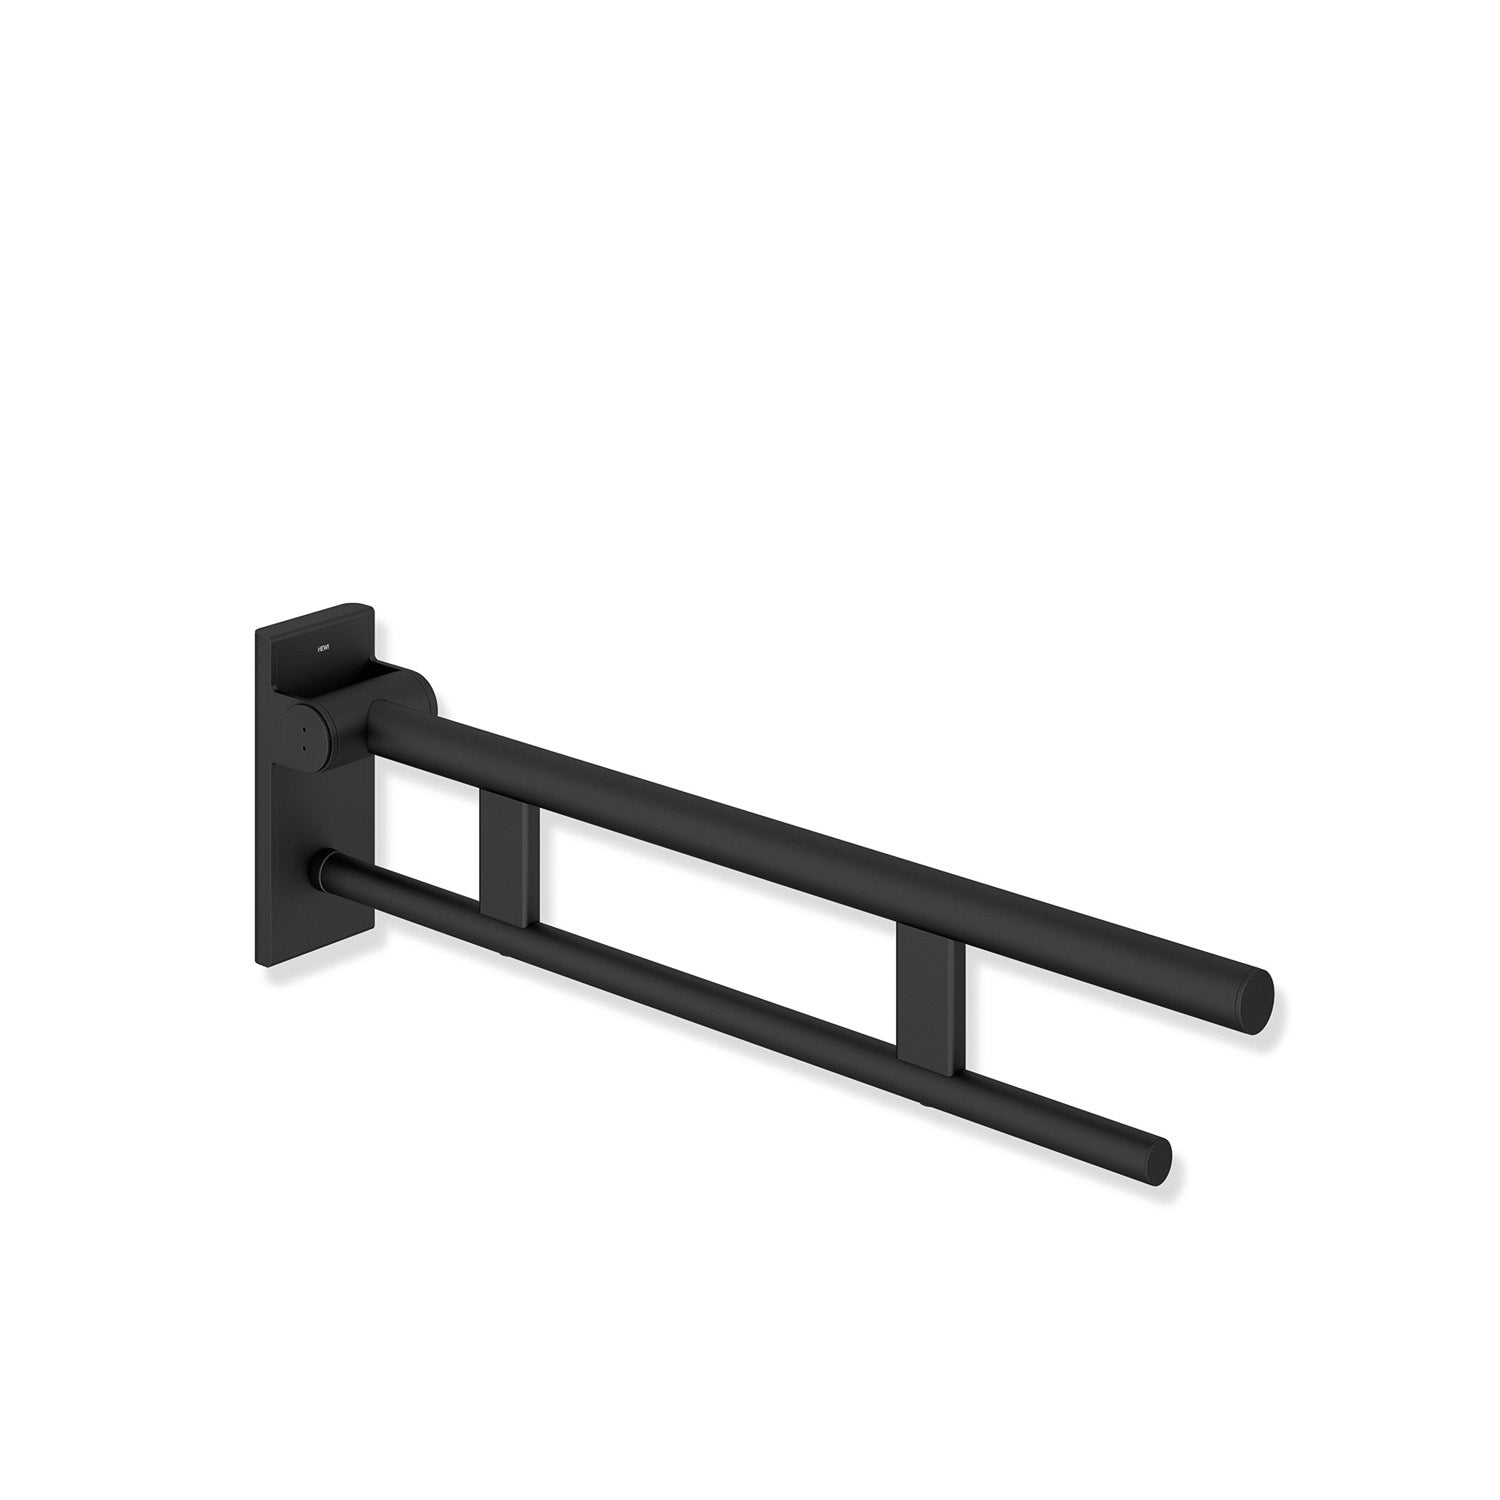 600mm Freestyle Removable Hinged Grab Rail with a matt black finish on a white background